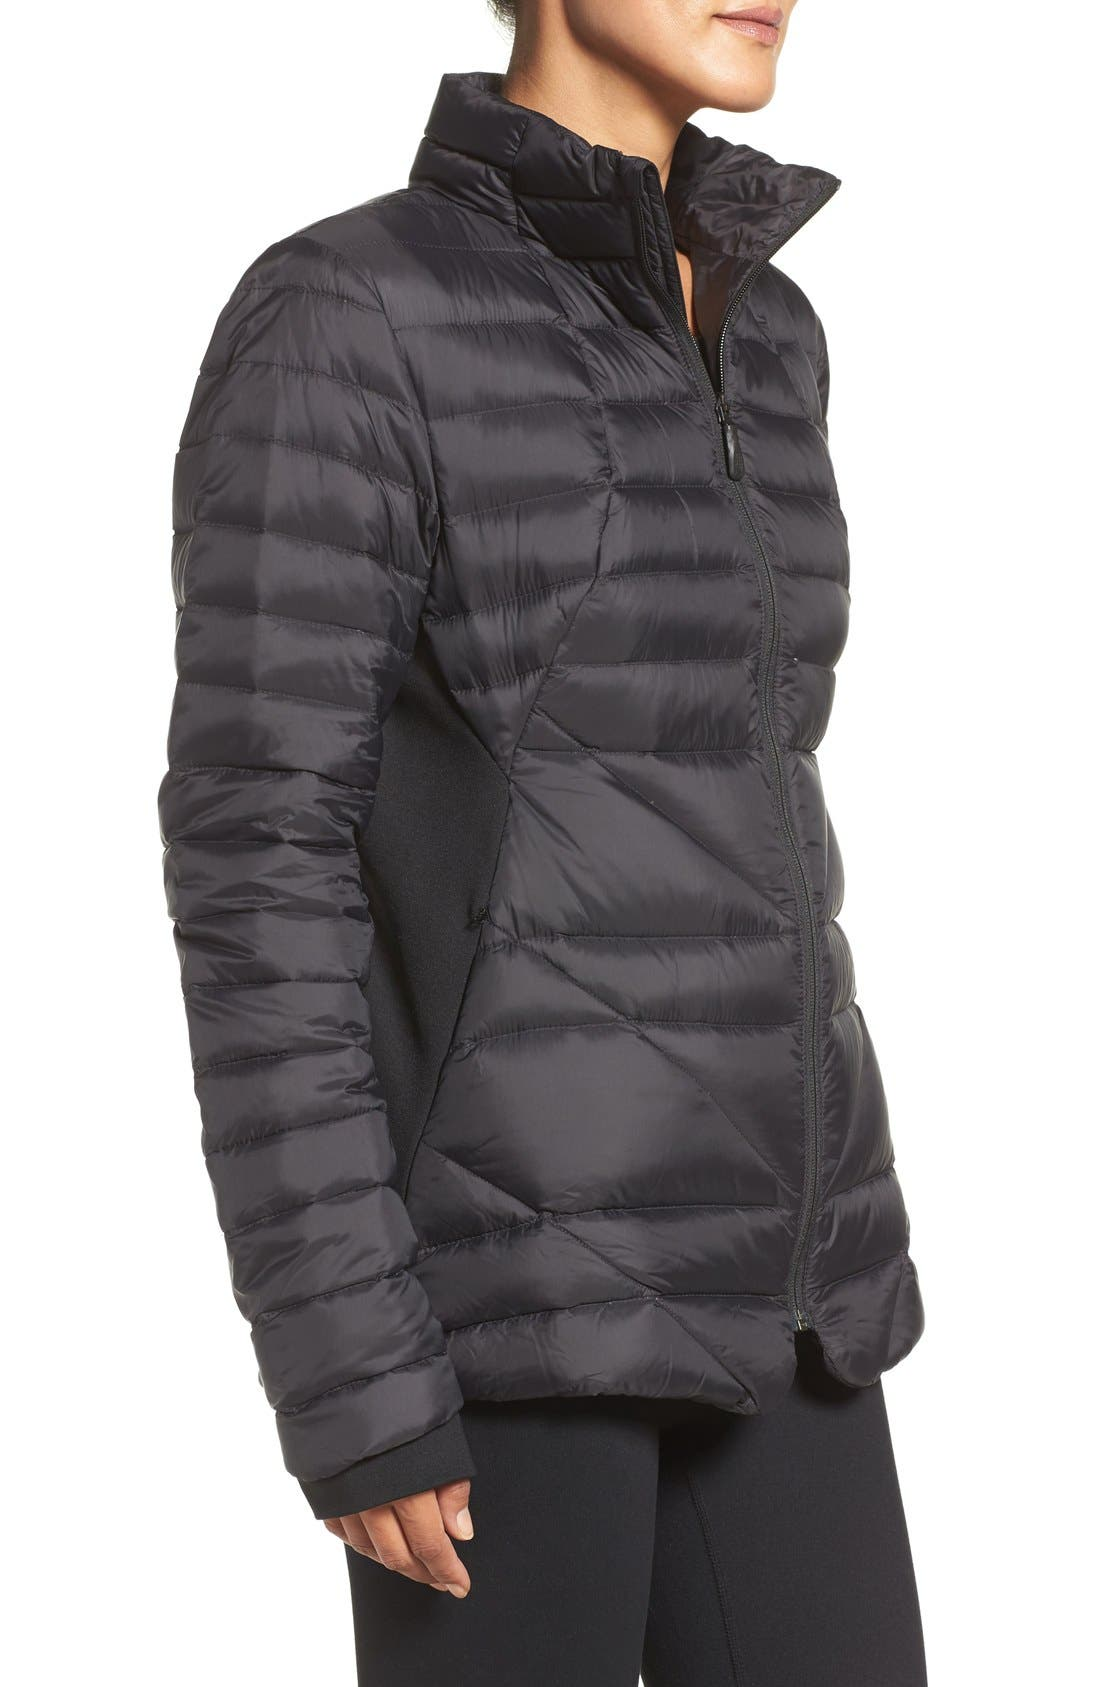 THE NORTH FACE,                             Lucia Hybrid Down Jacket,                             Alternate thumbnail 3, color,                             001